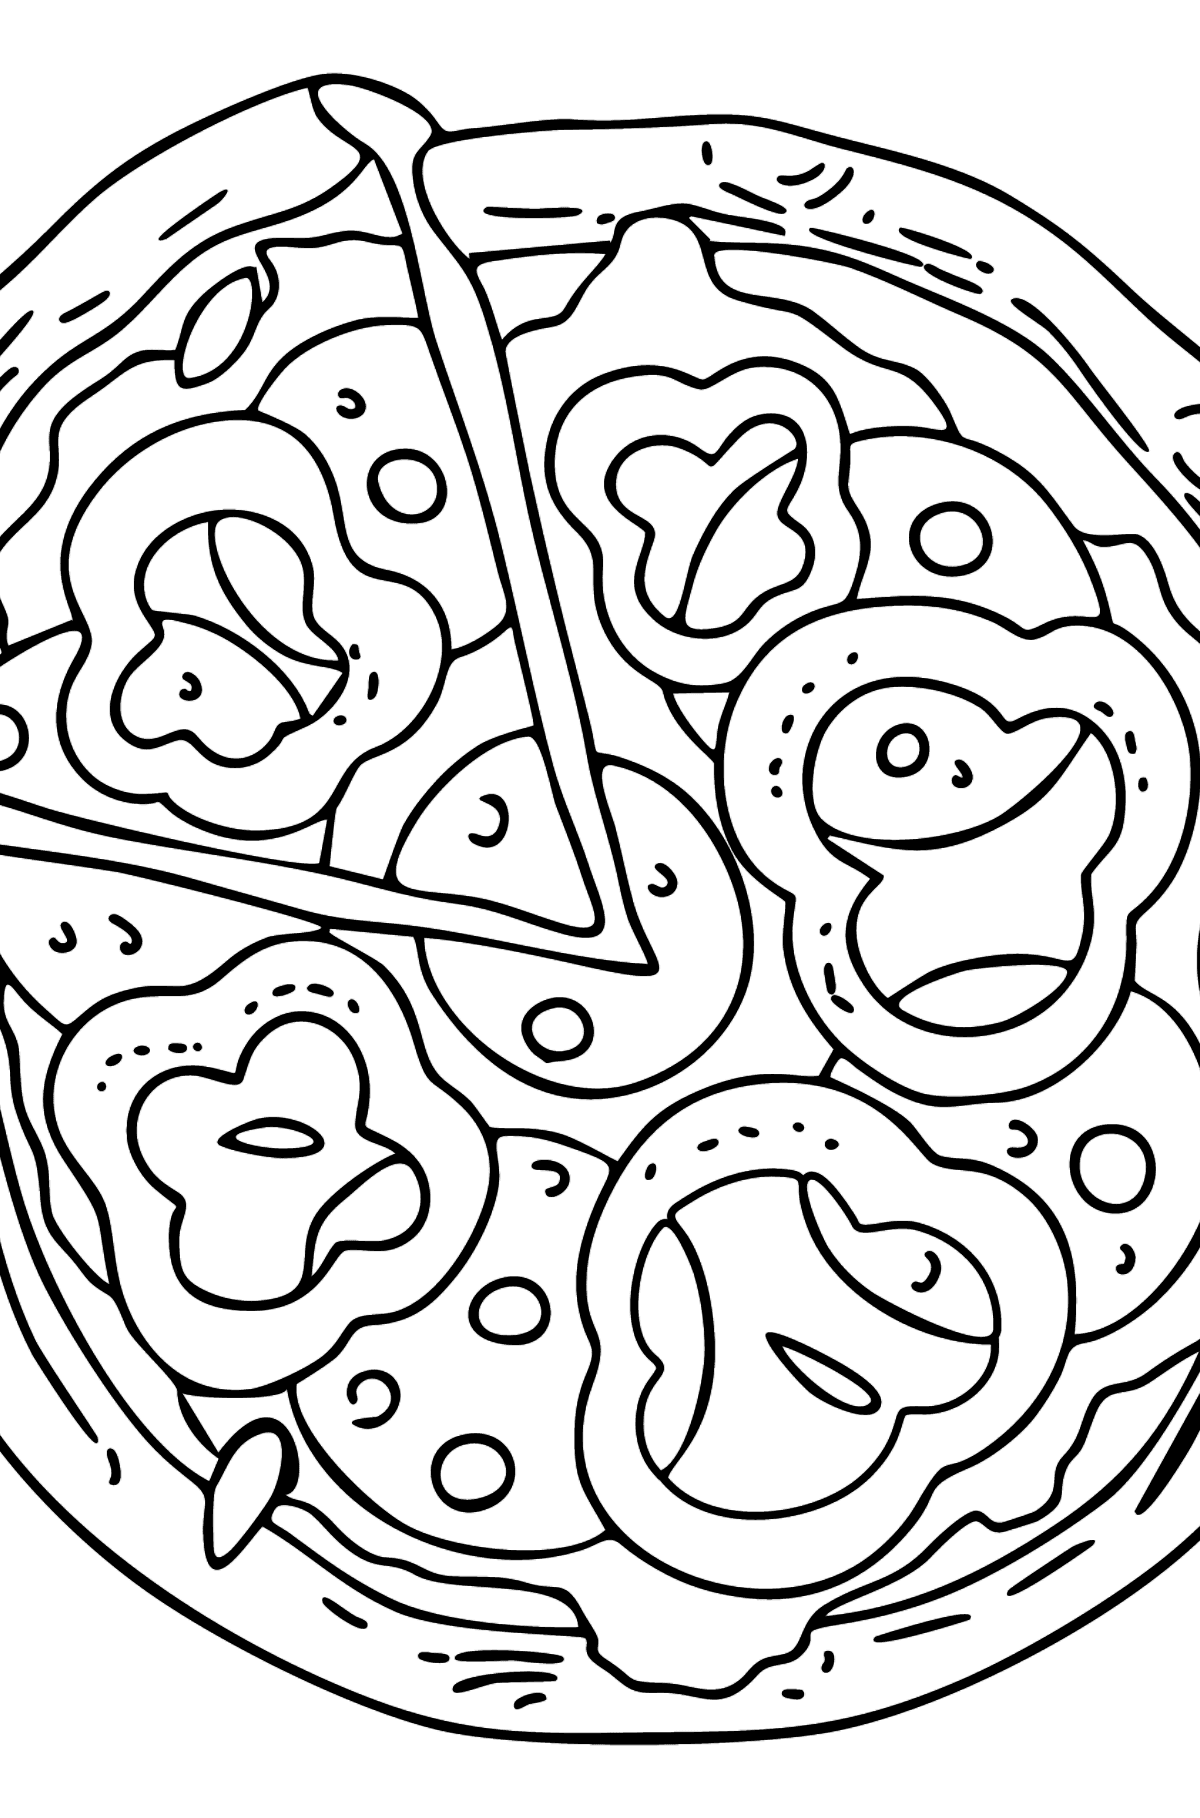 Tasty Pizza coloring page - Coloring Pages for Kids